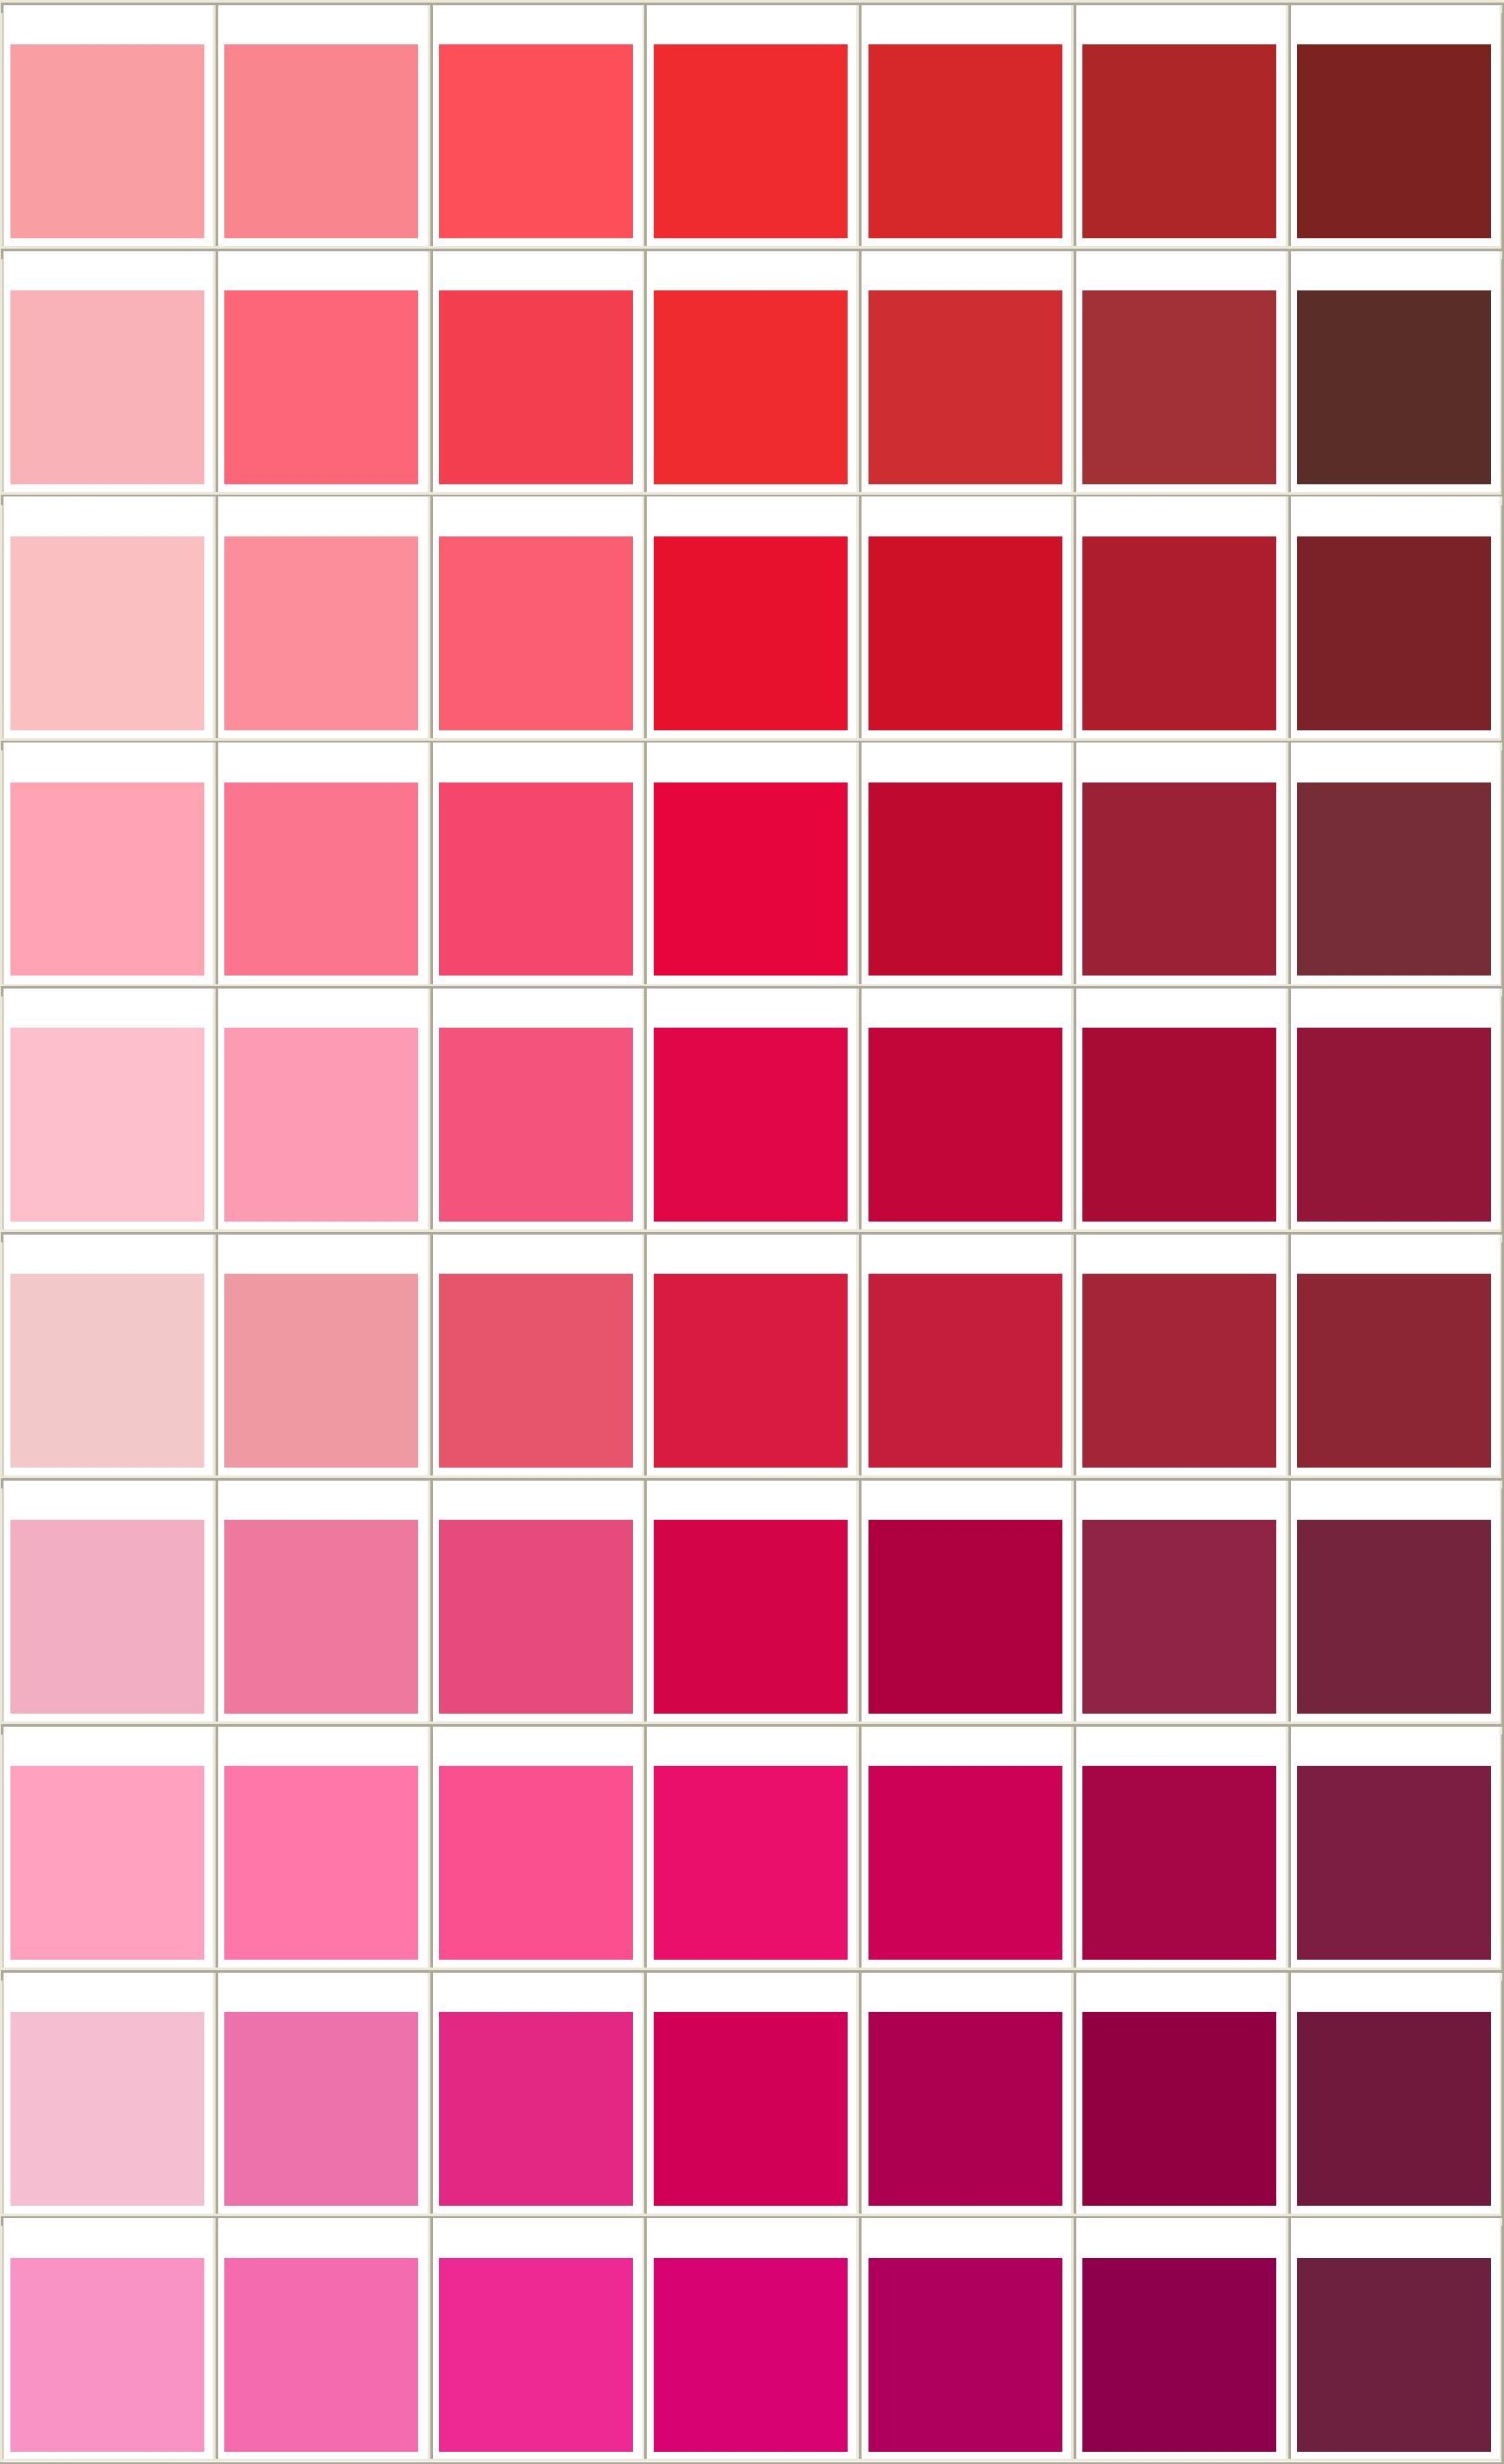 general printing color chart free download